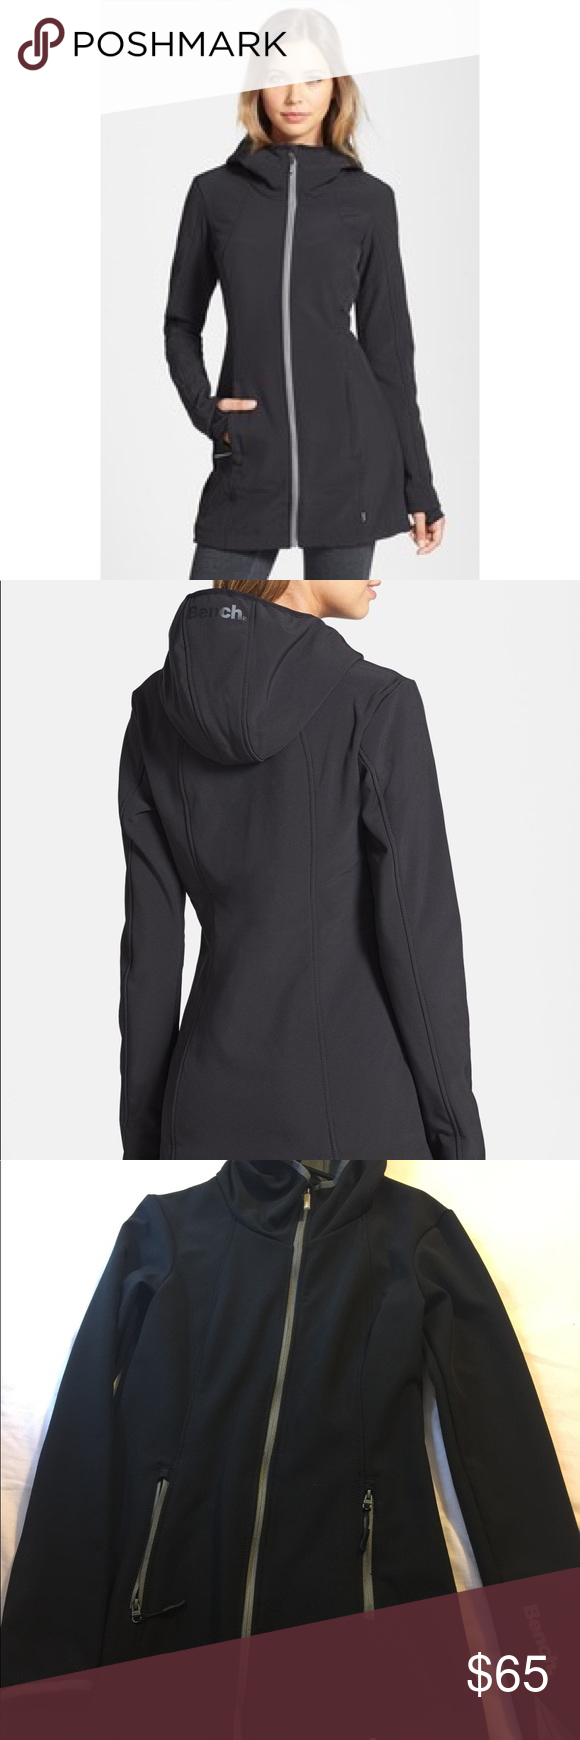 Bench Hooded Soft Shell Jacket Fashion Clothes Design Fashion Design [ 1740 x 580 Pixel ]